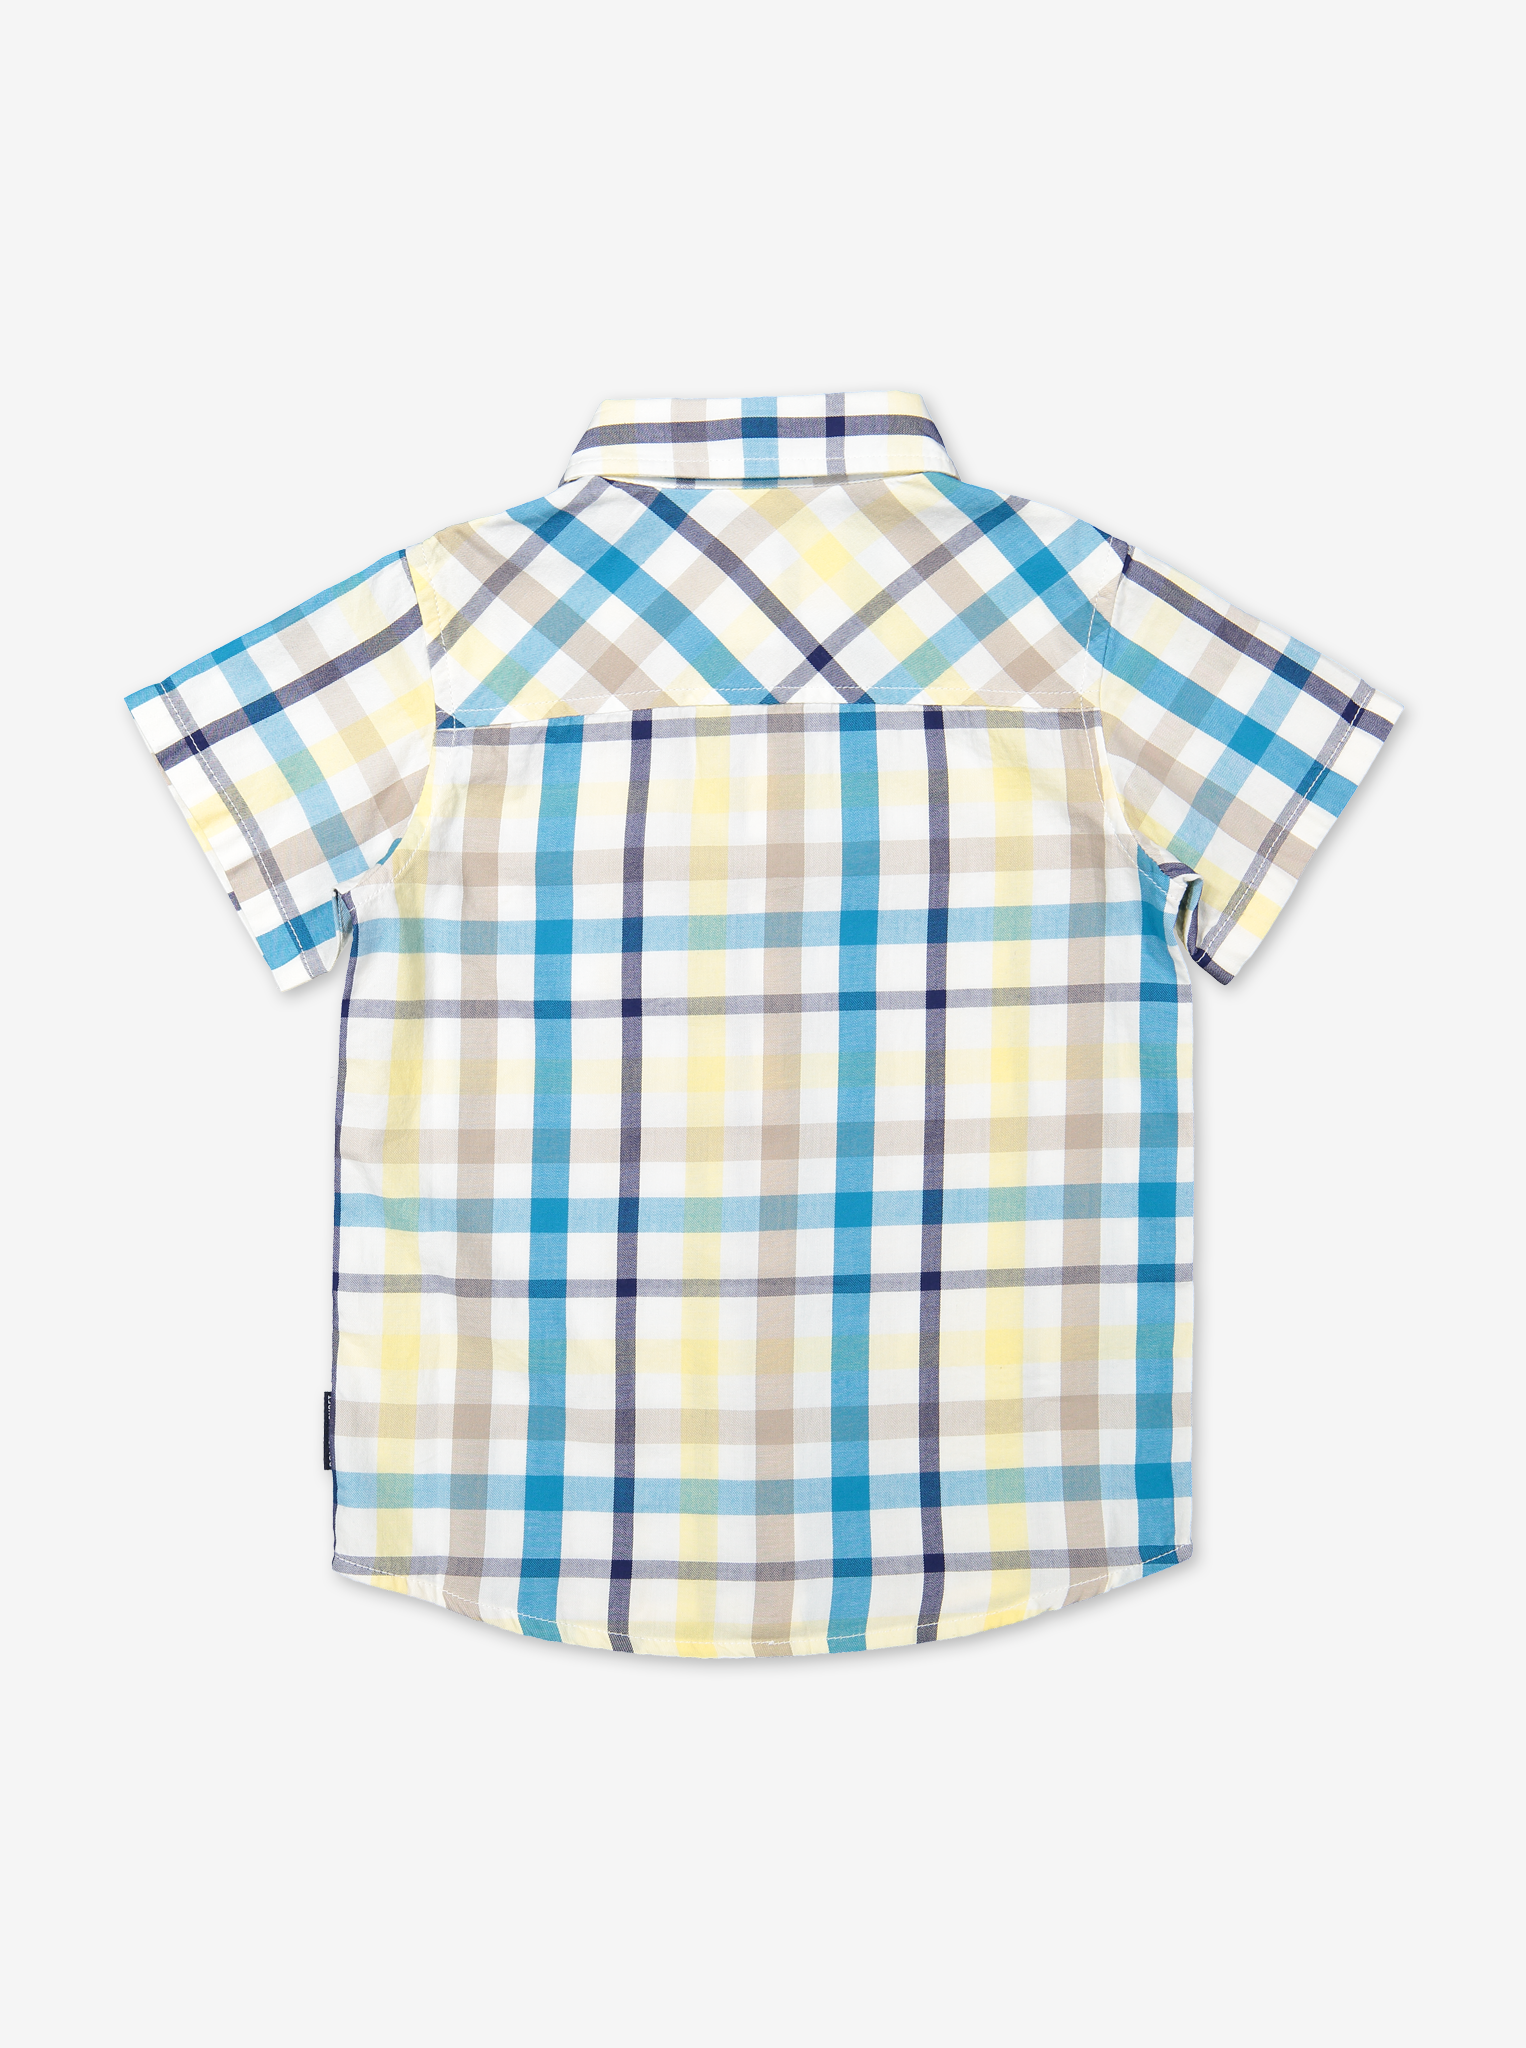 Summer Check Kids Shirt-Boy-1-12y-Turquoise